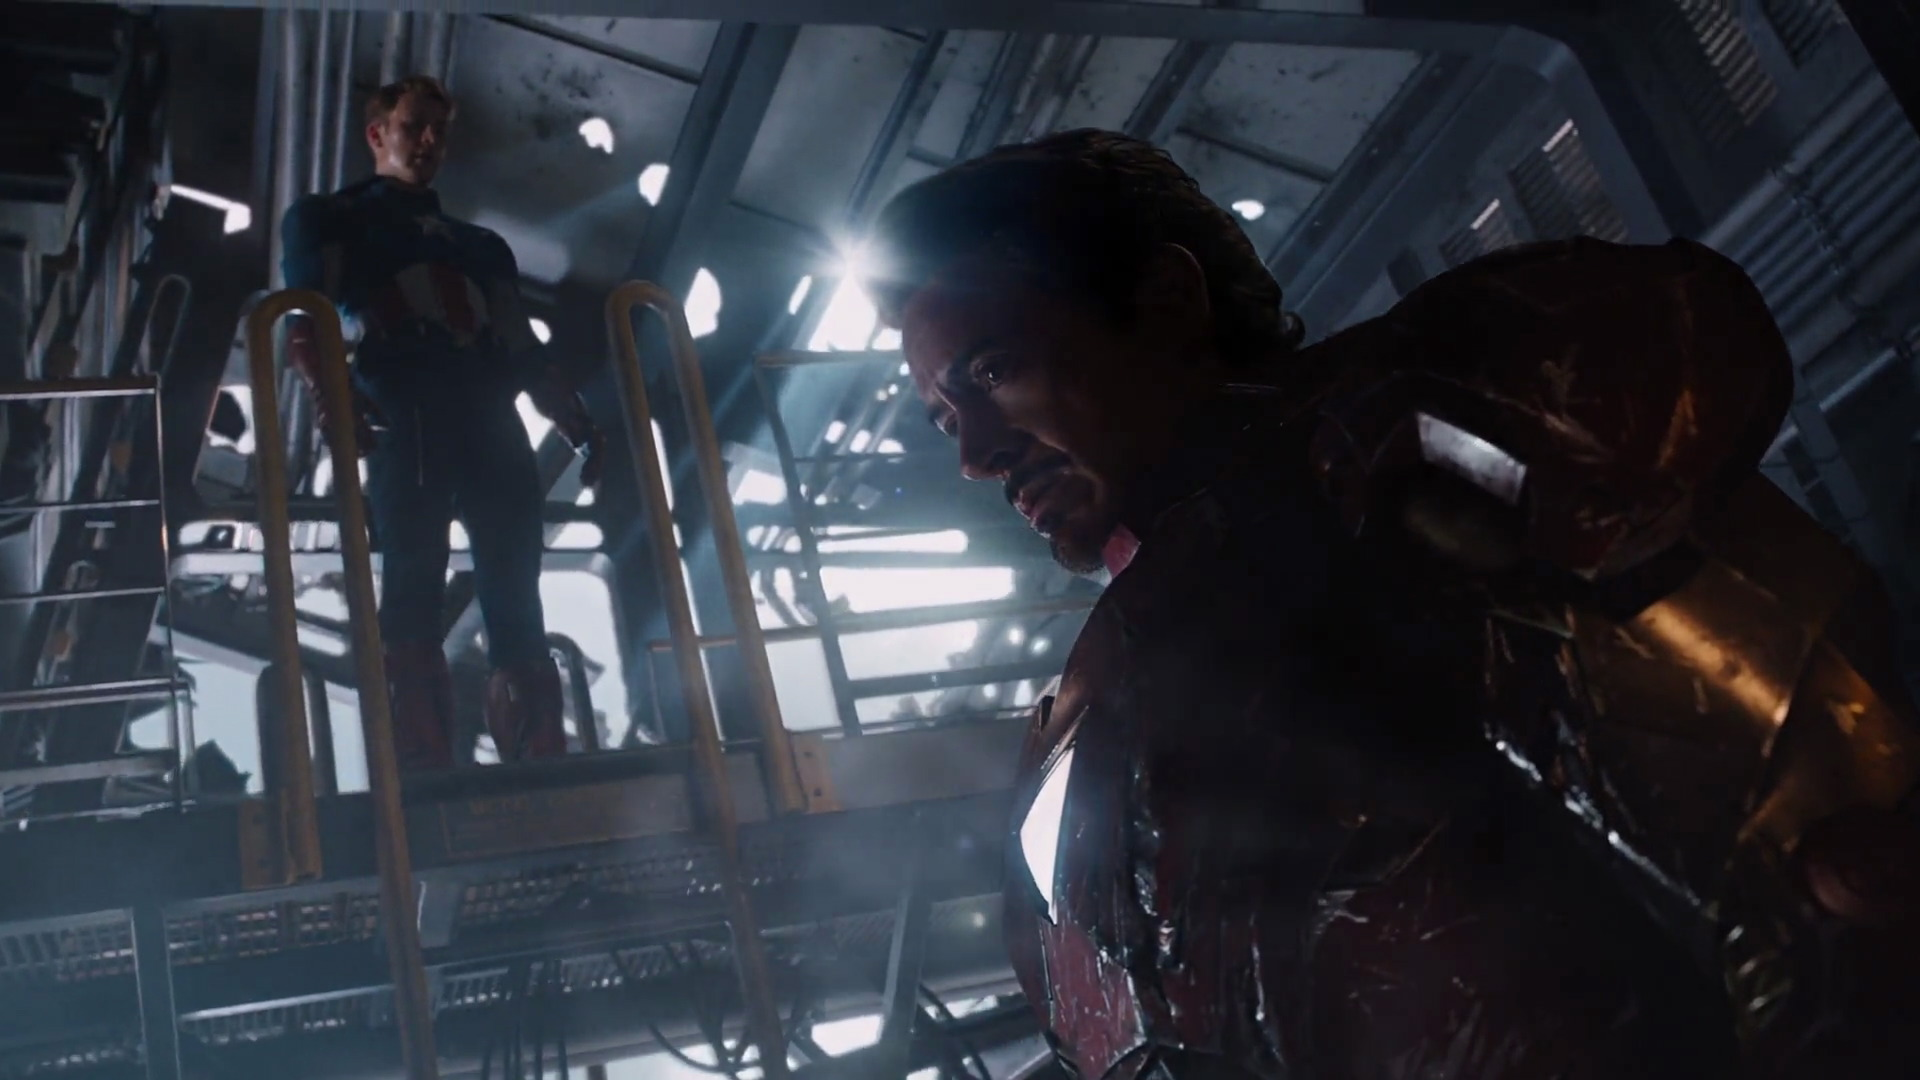 http://www.caps.media/201/2-avengers/full/avengers-movie-screencaps.com-10574.jpg